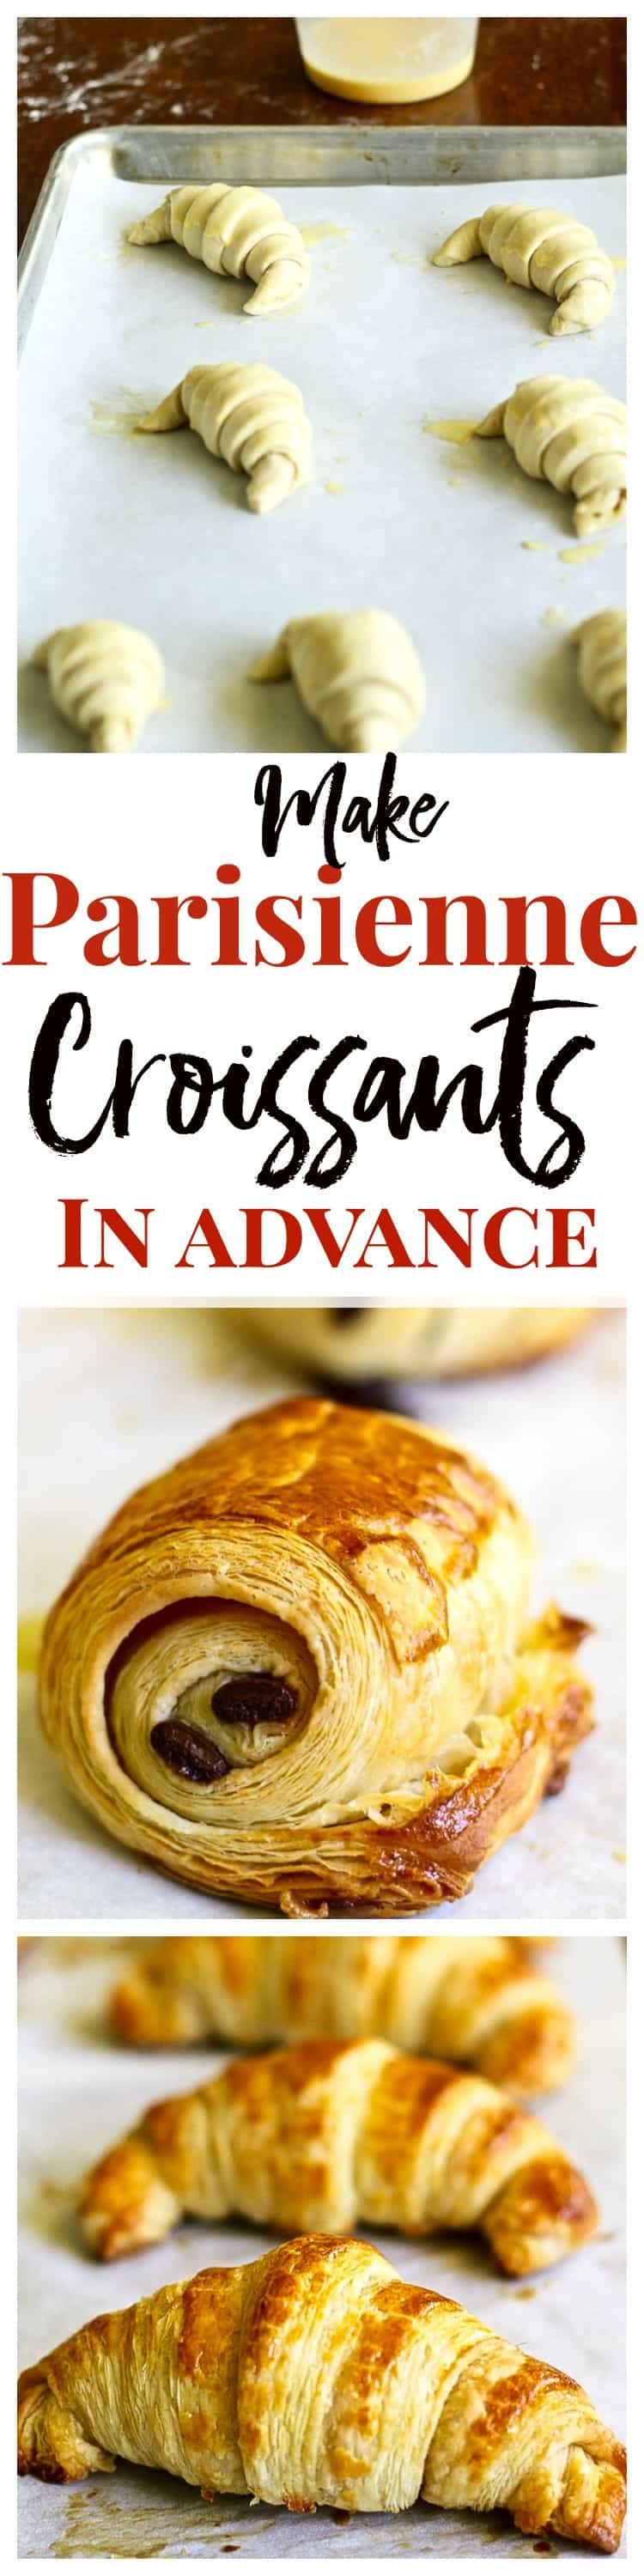 Make french croissants like a pro with over 40 step-by-step photos!